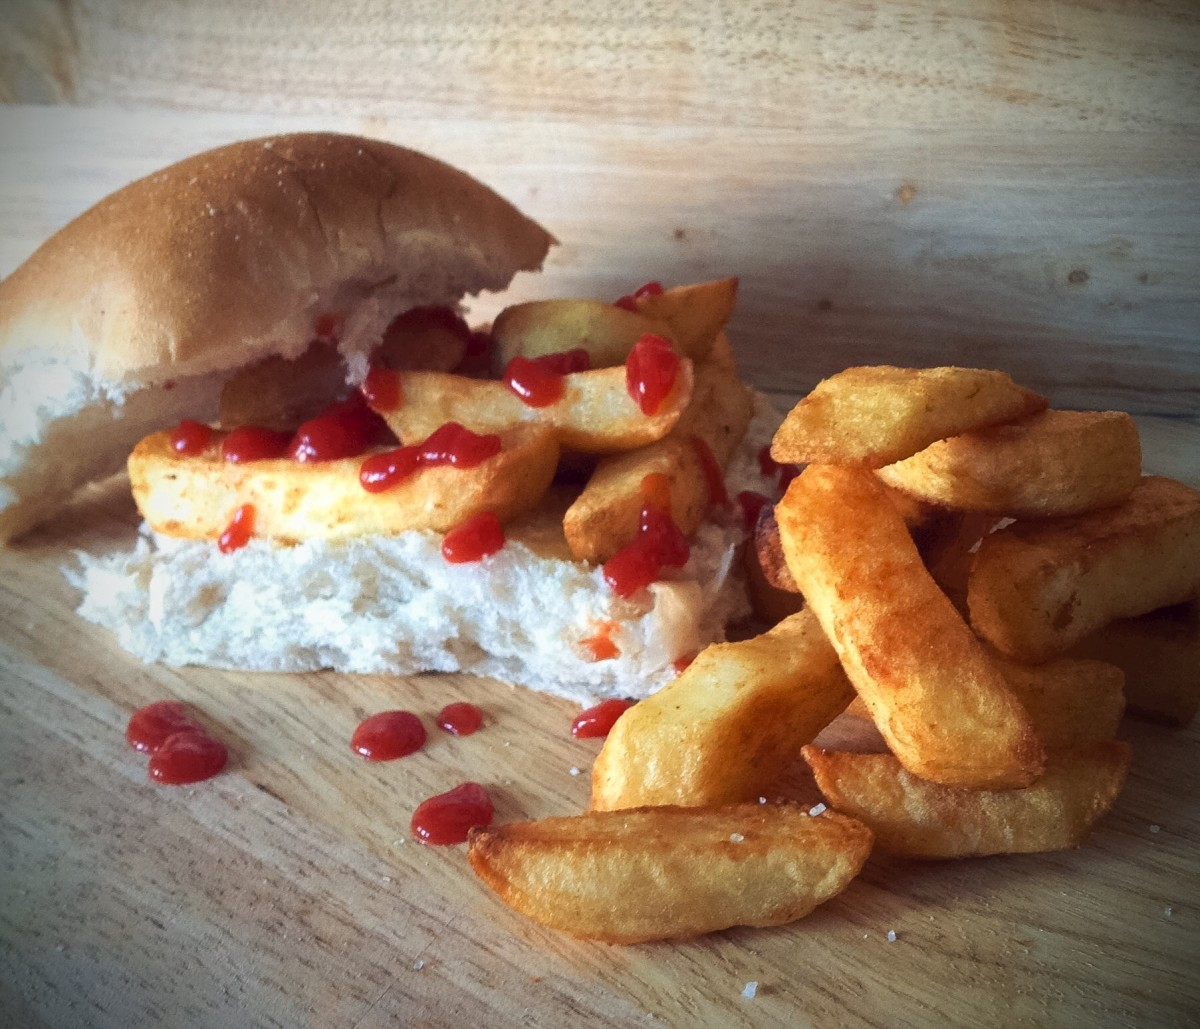 A traditional chip butty with white bread, tomato sauce and extra chips